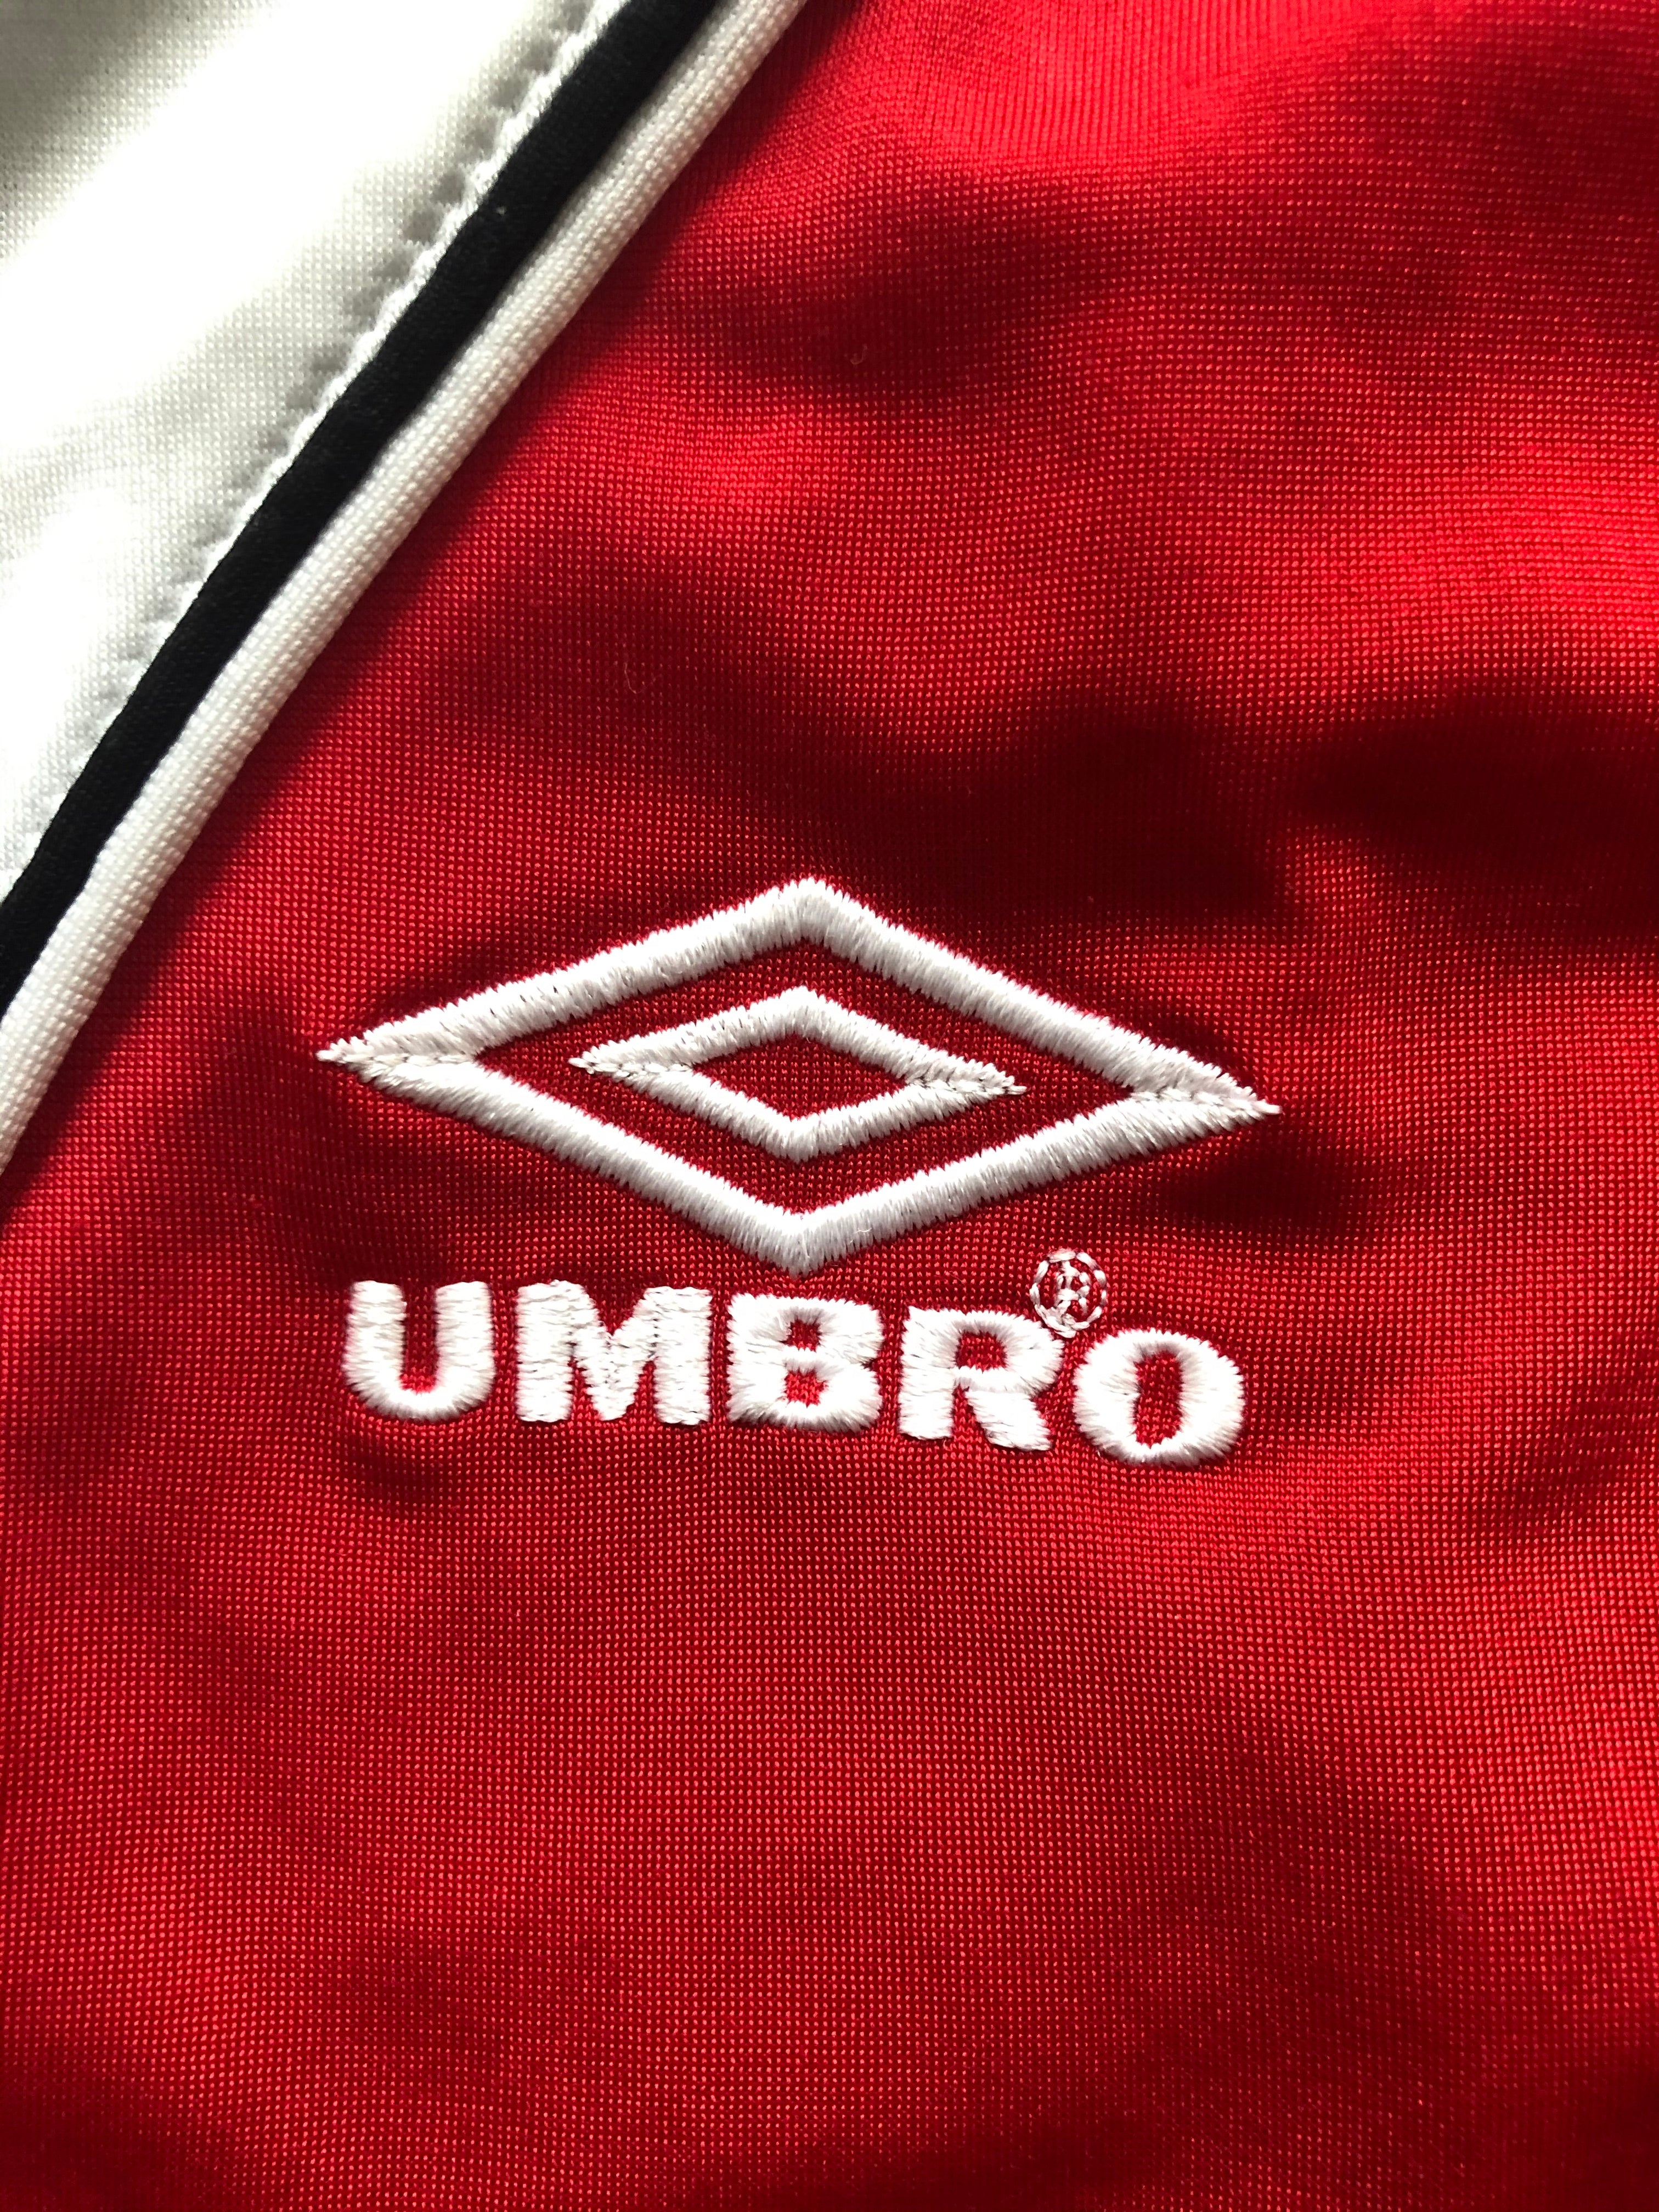 1999/00 Manchester United Track Jacket (Y) 8.5/10